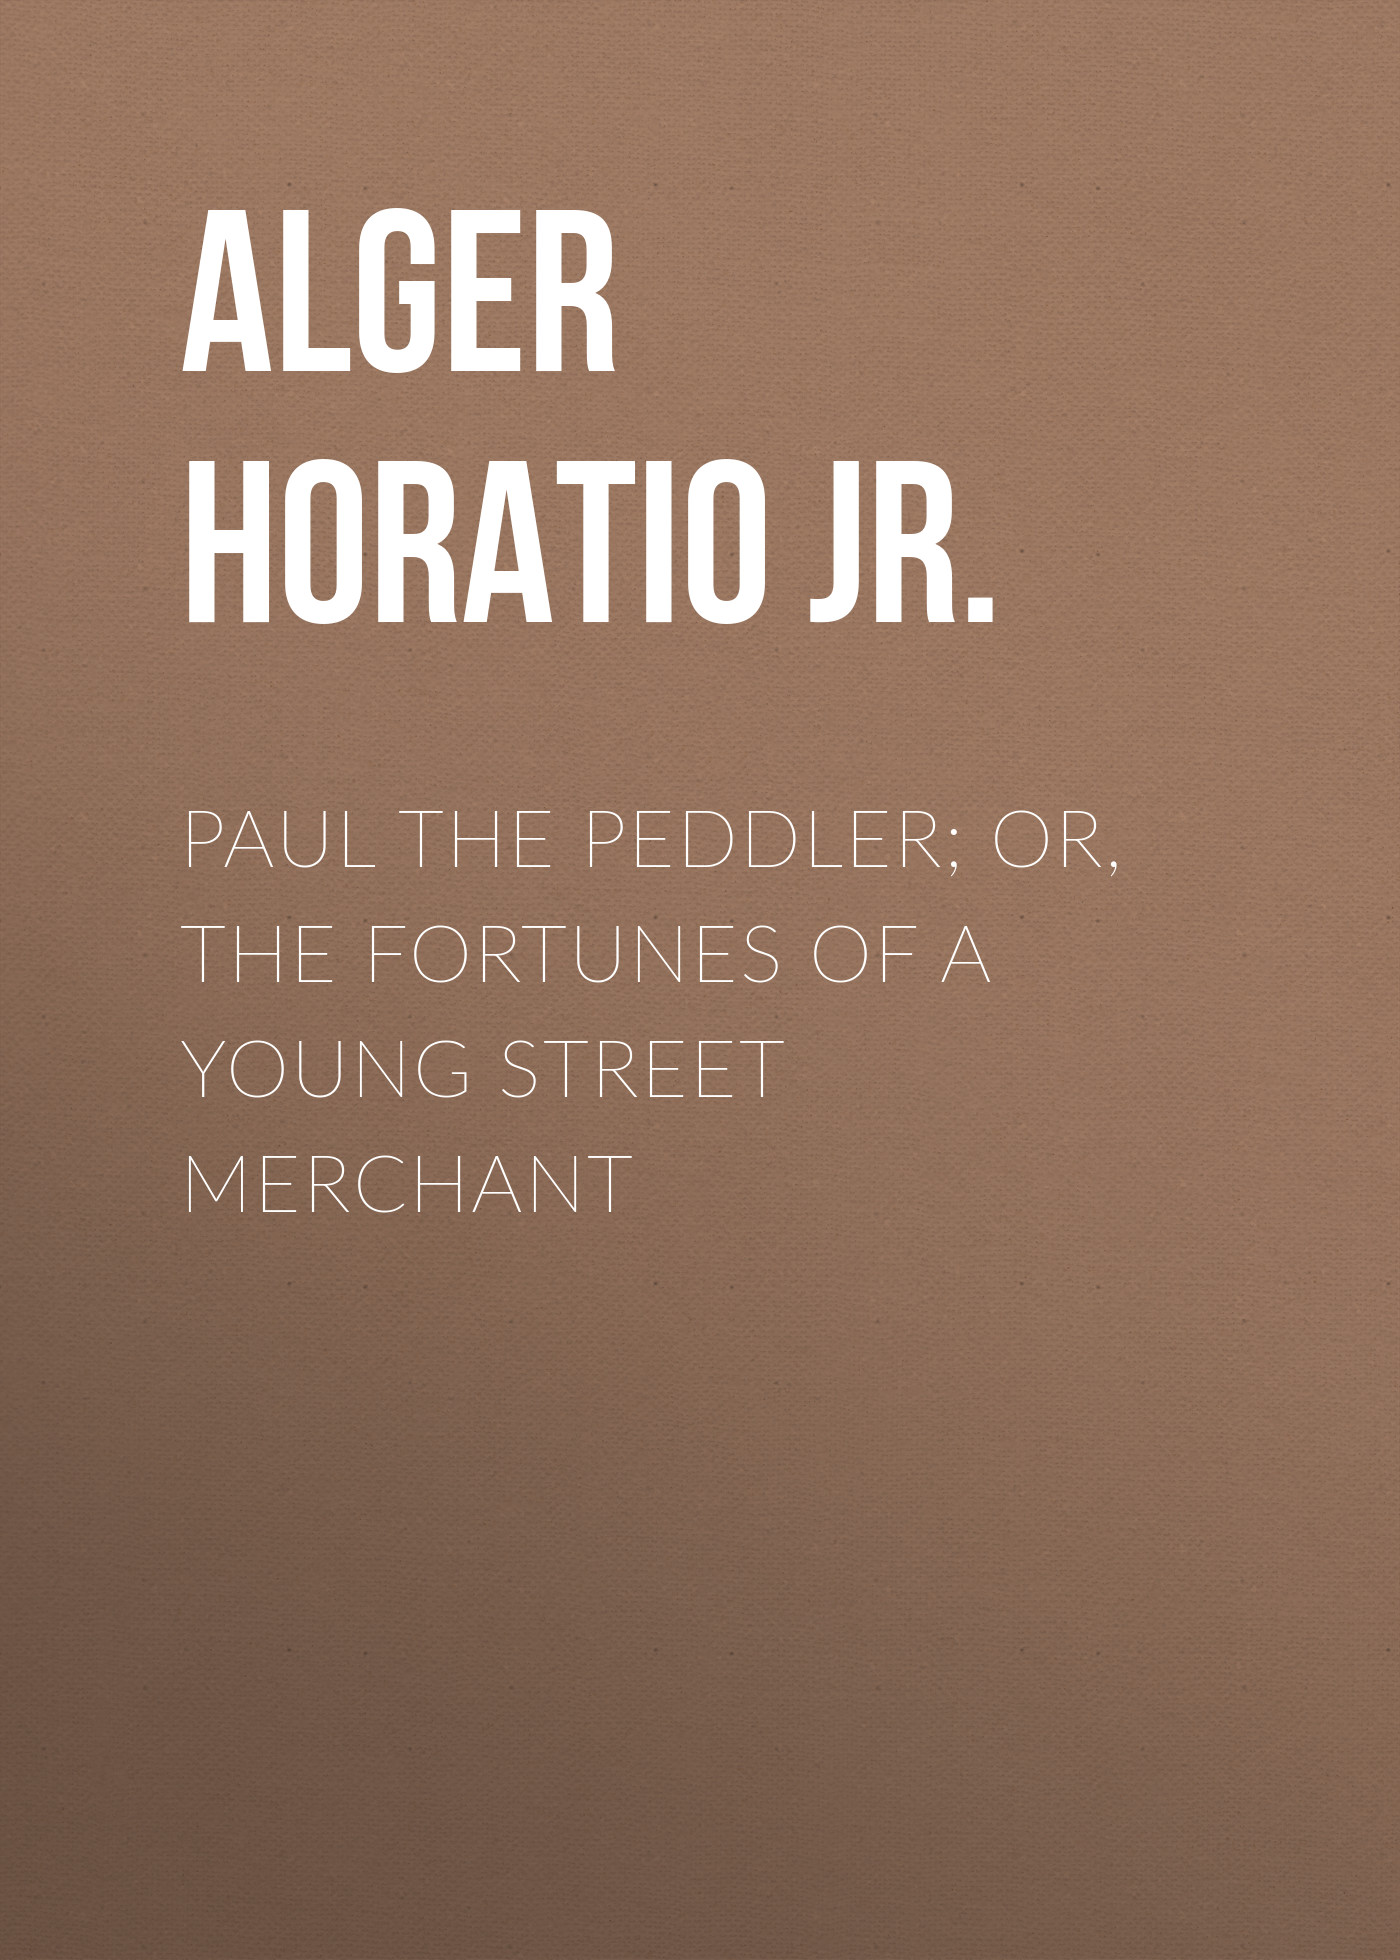 Alger Horatio Jr. Paul the Peddler; Or, The Fortunes of a Young Street Merchant alger horatio jr risen from the ranks or harry walton s success